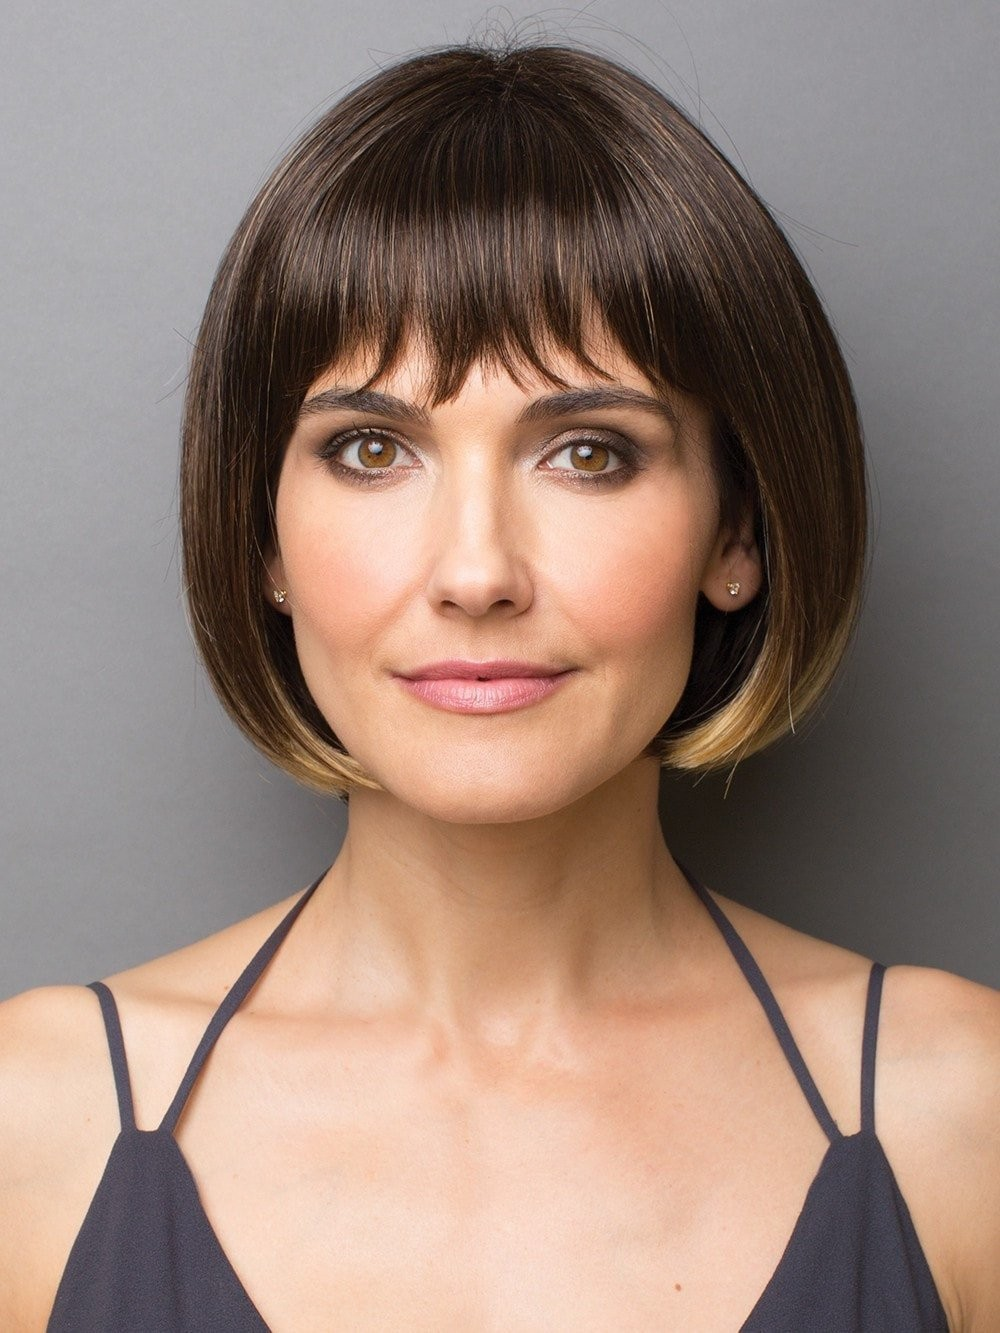 chin length bangs are a part of layered hairstyles long layers add classic chin length bob style wigs with full bang best